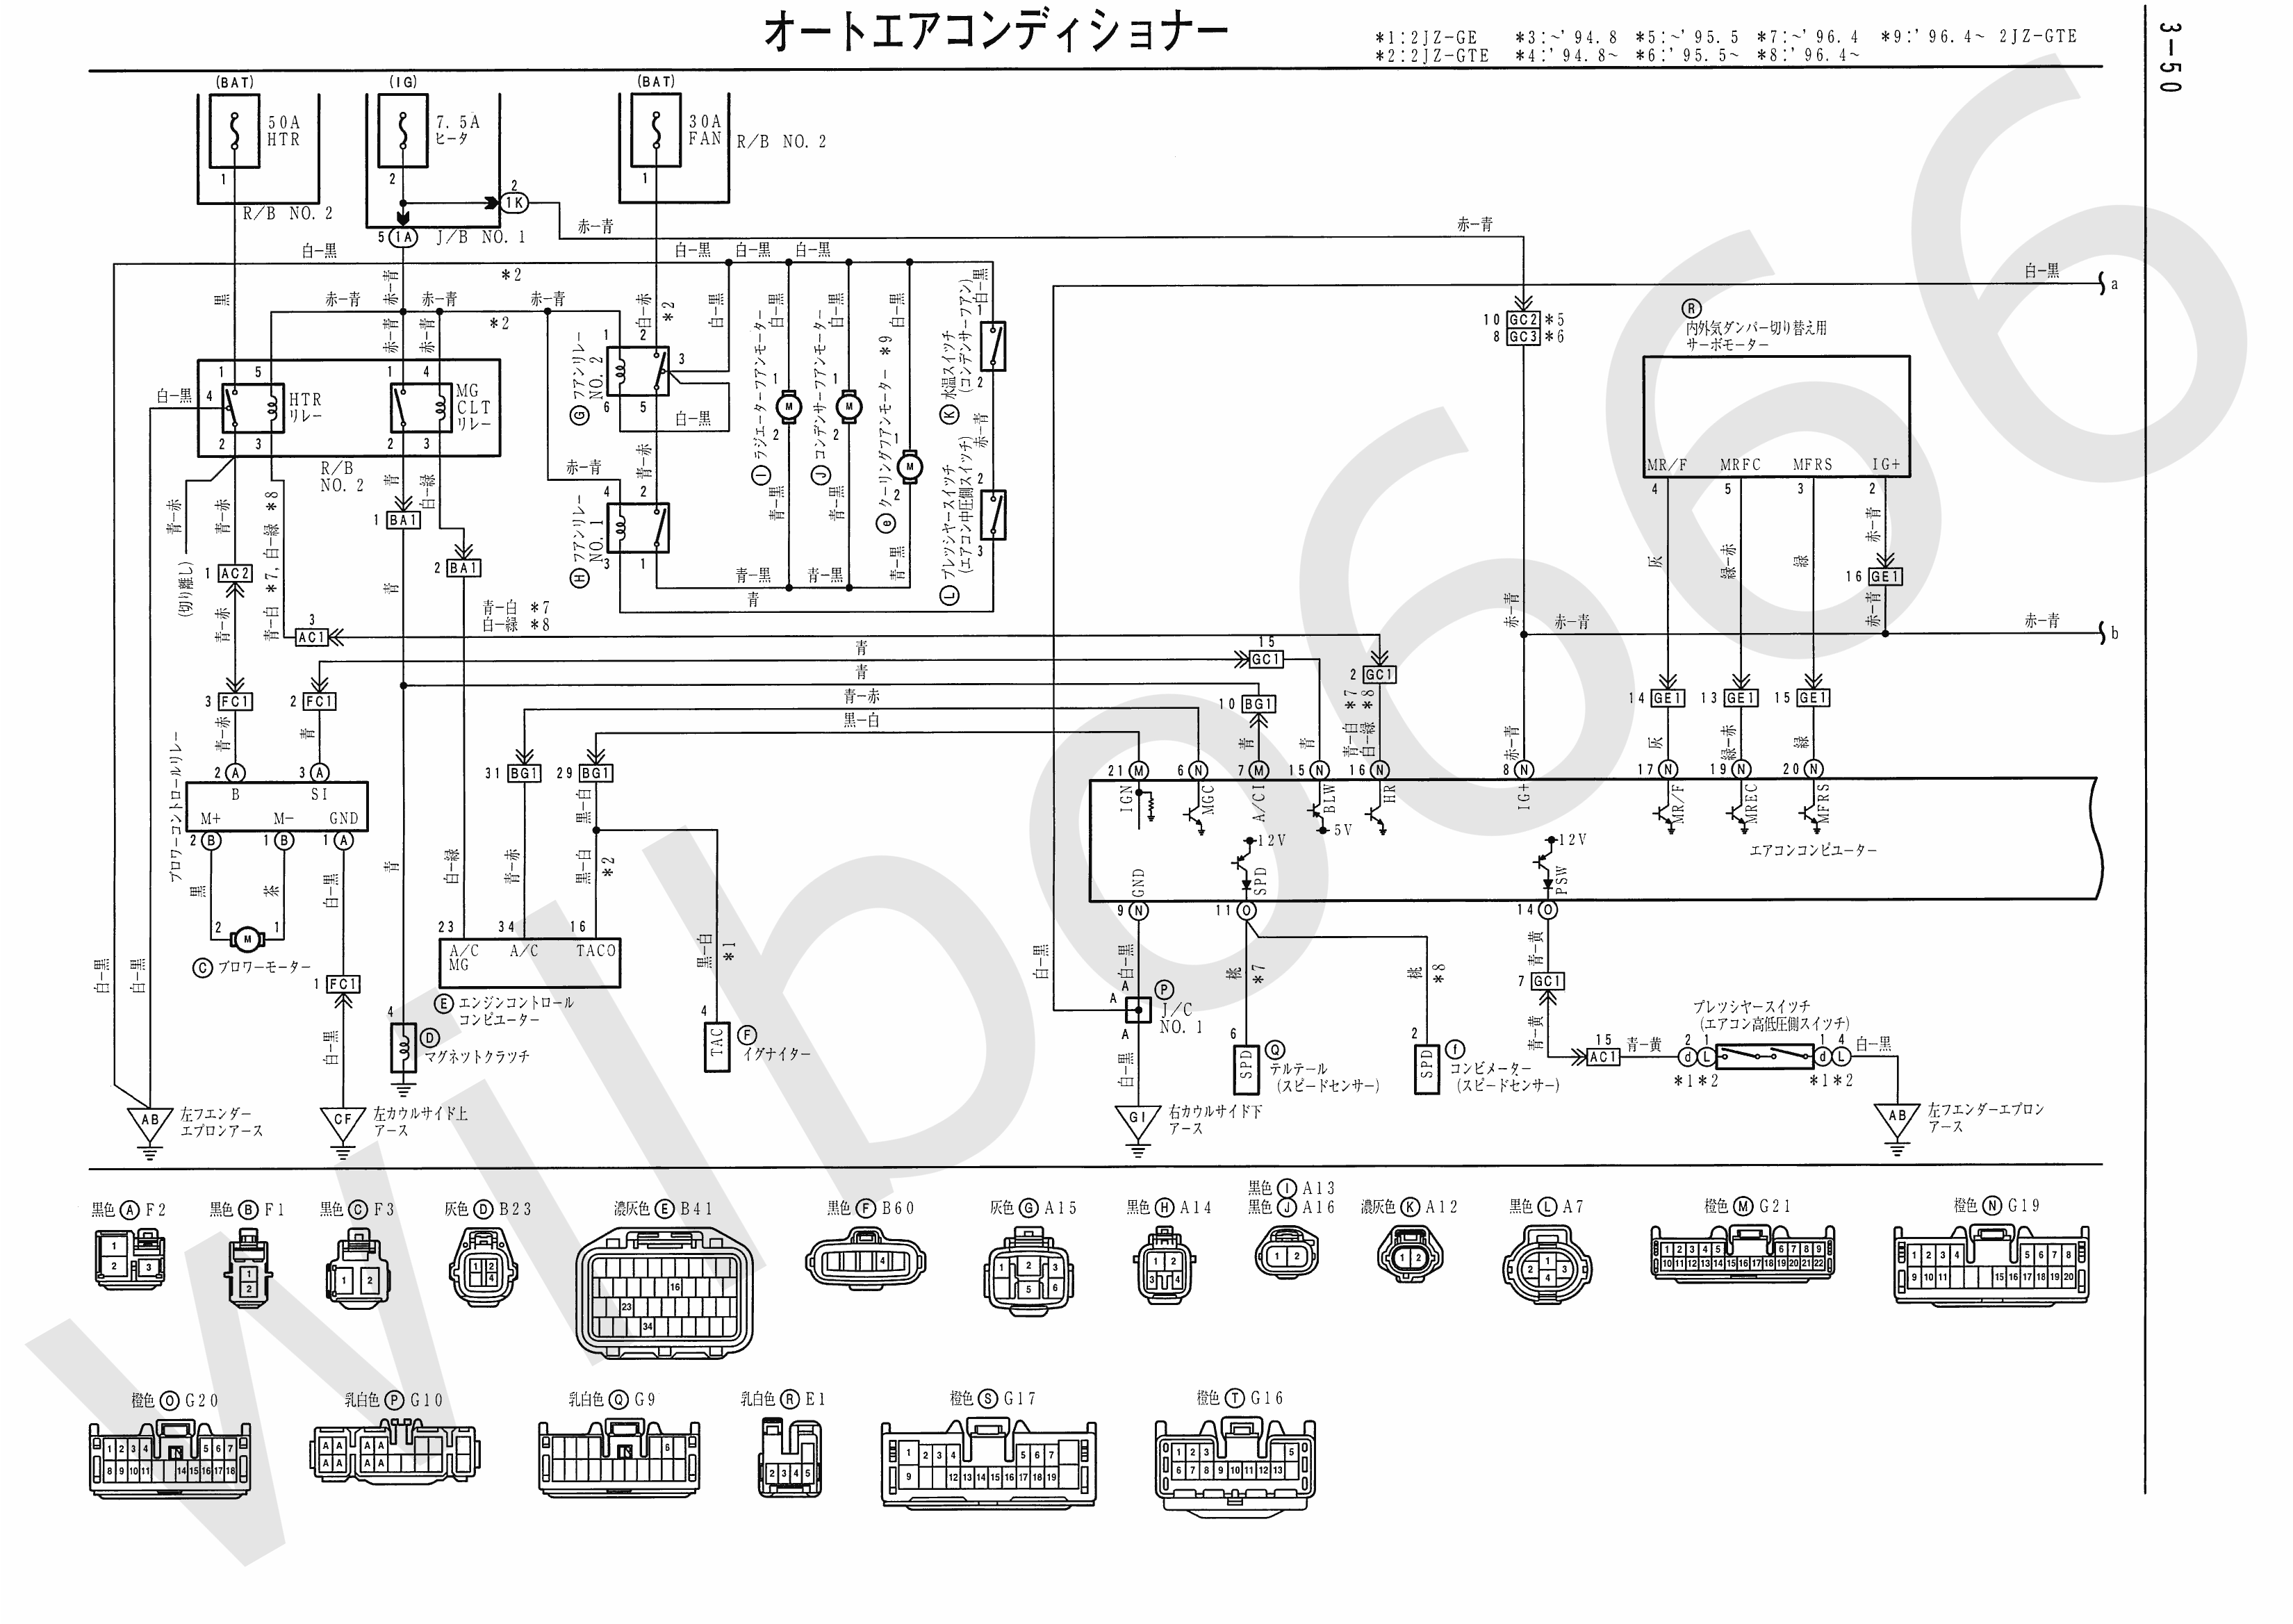 JZA80 Electrical Wiring Diagram 6742505 3 50 wilbo666 2jz ge jza80 supra engine wiring Lexus SC300 Engine at cos-gaming.co